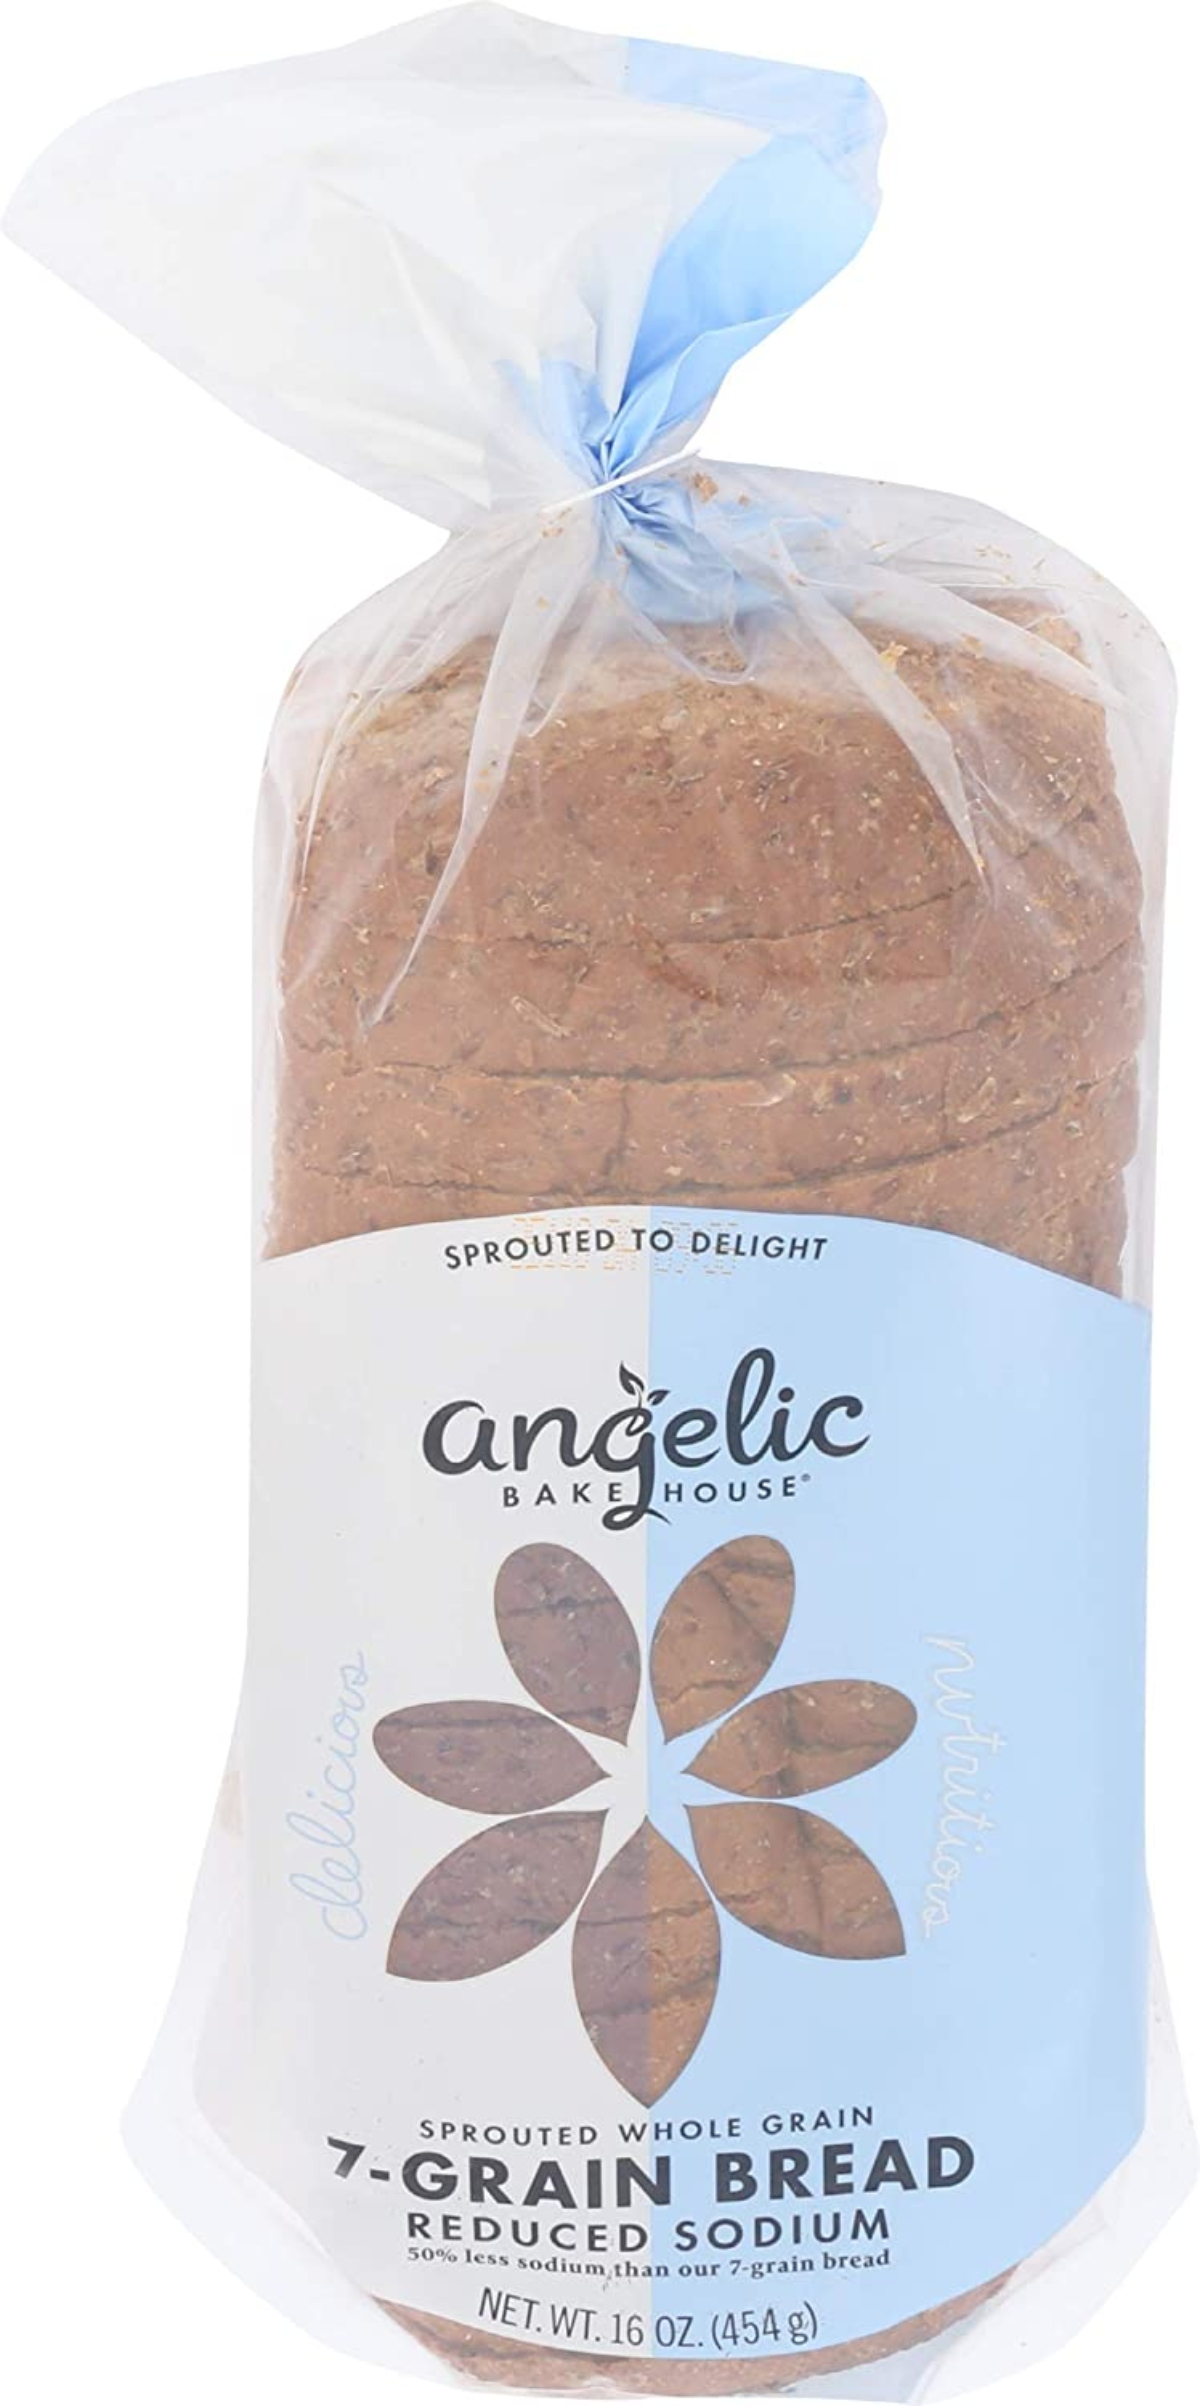 Angelic Bakehouse Sprouted 7-Grain Bread